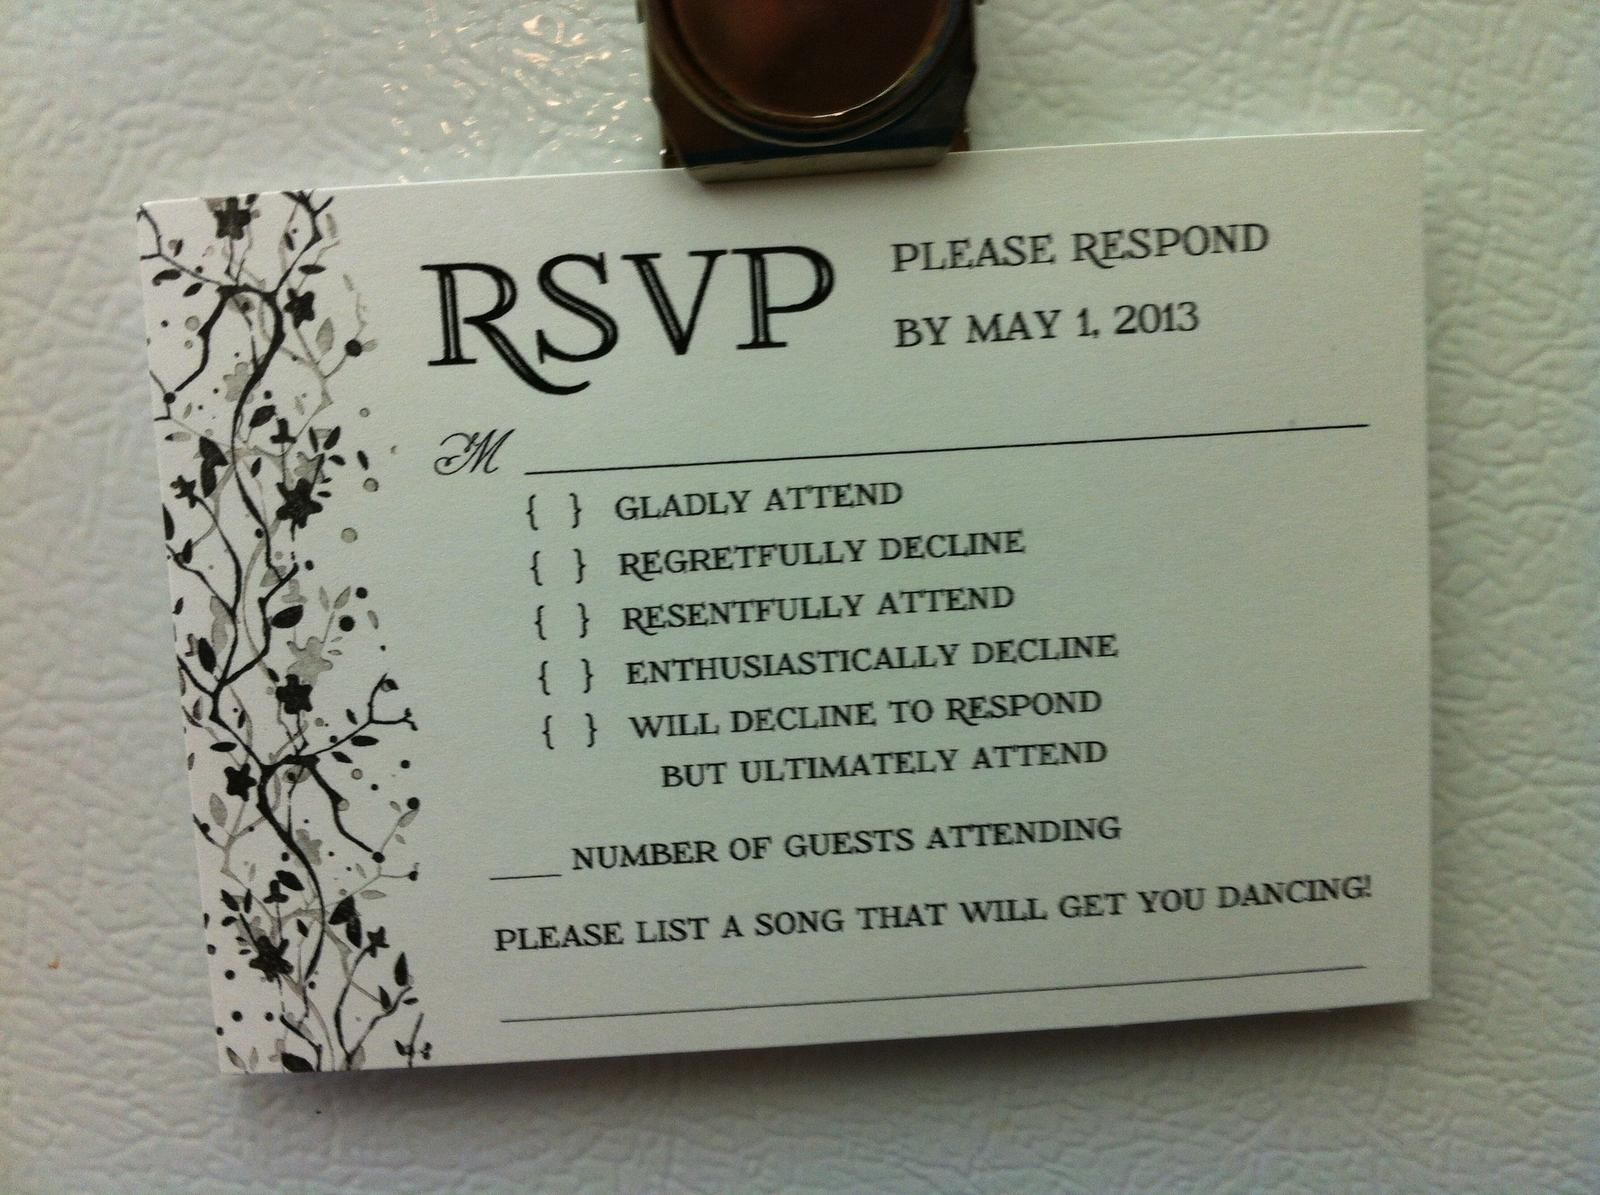 ba6f82aa6c93a16b81576d71348898f9 look clever rsvp is brutally honest,How To Reject A Wedding Invitation